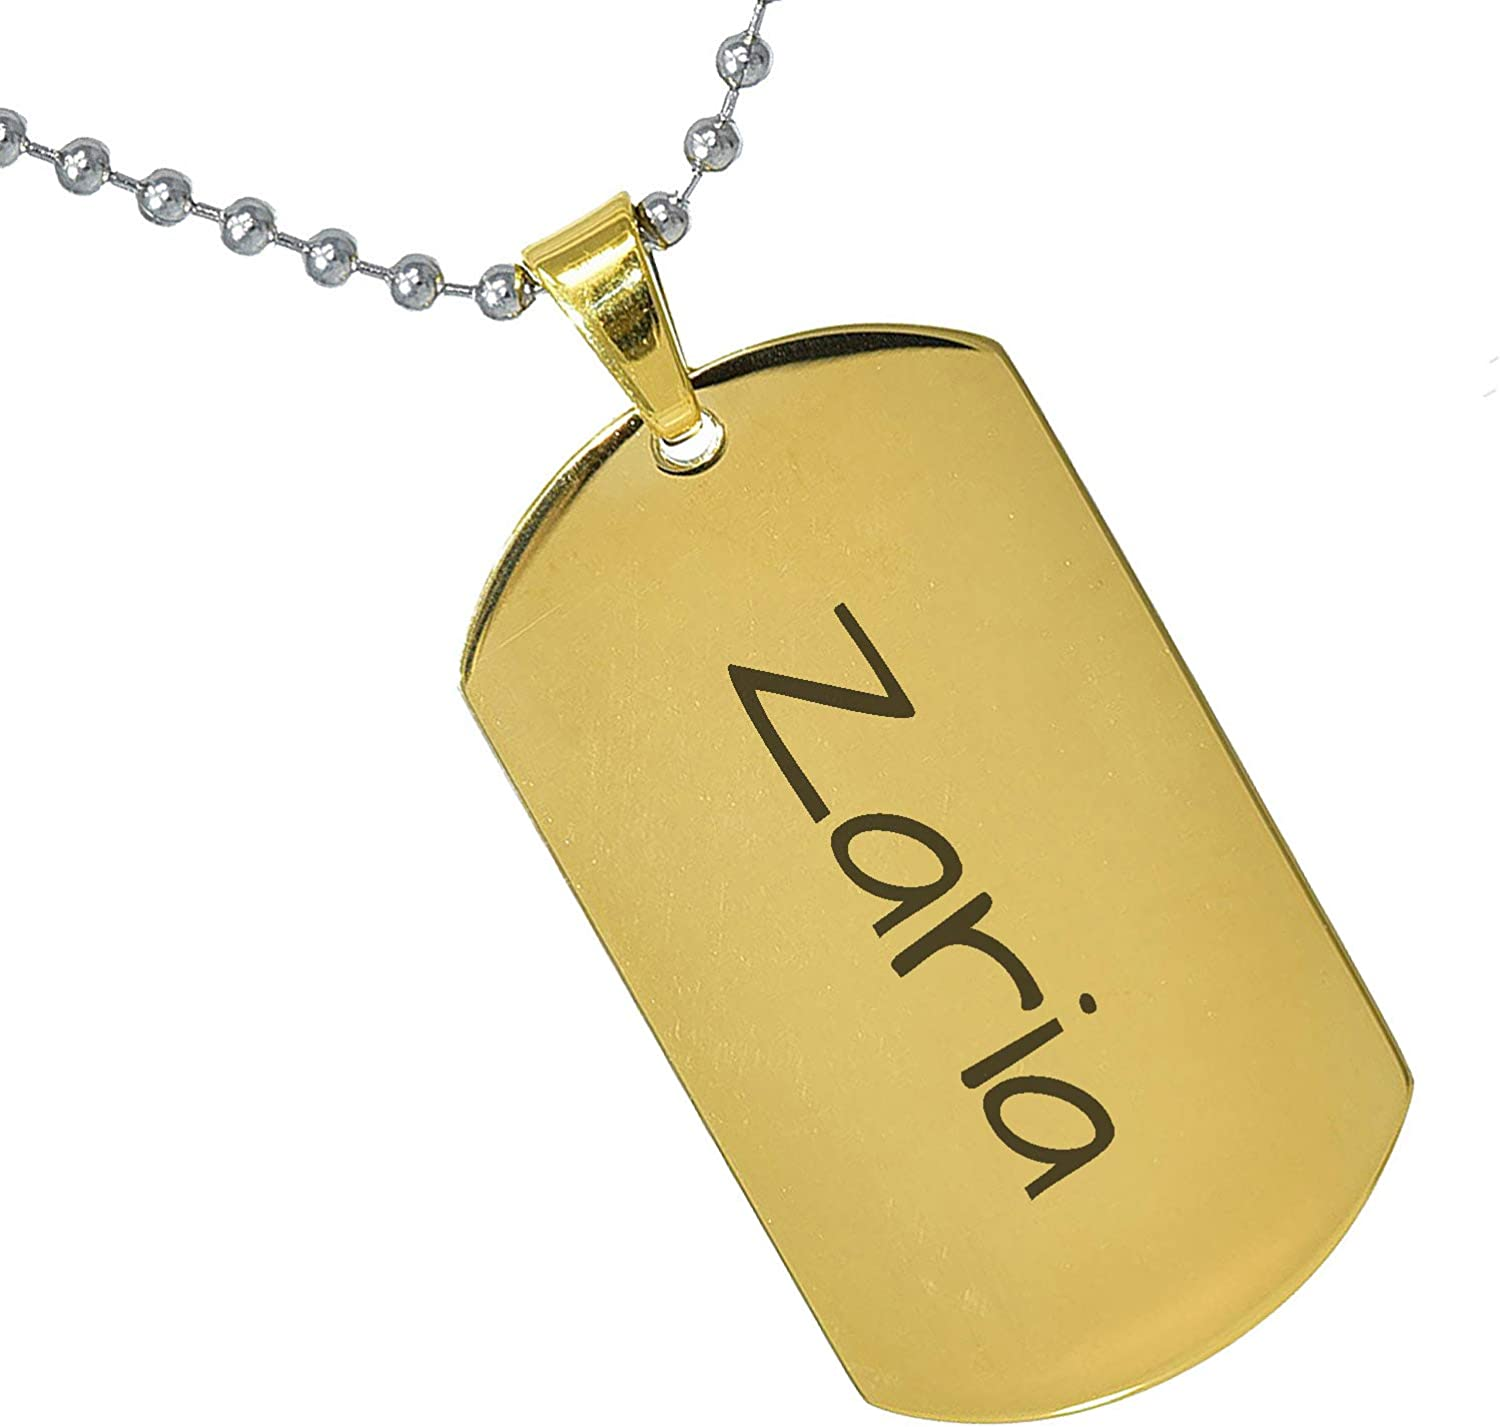 Stainless Steel Silver Gold Black Rose Gold Color Baby Name Zaria Engraved Personalized Gifts For Son Daughter Boyfriend Girlfriend Initial Customizable Pendant Necklace Dog Tags 24 Ball Chain